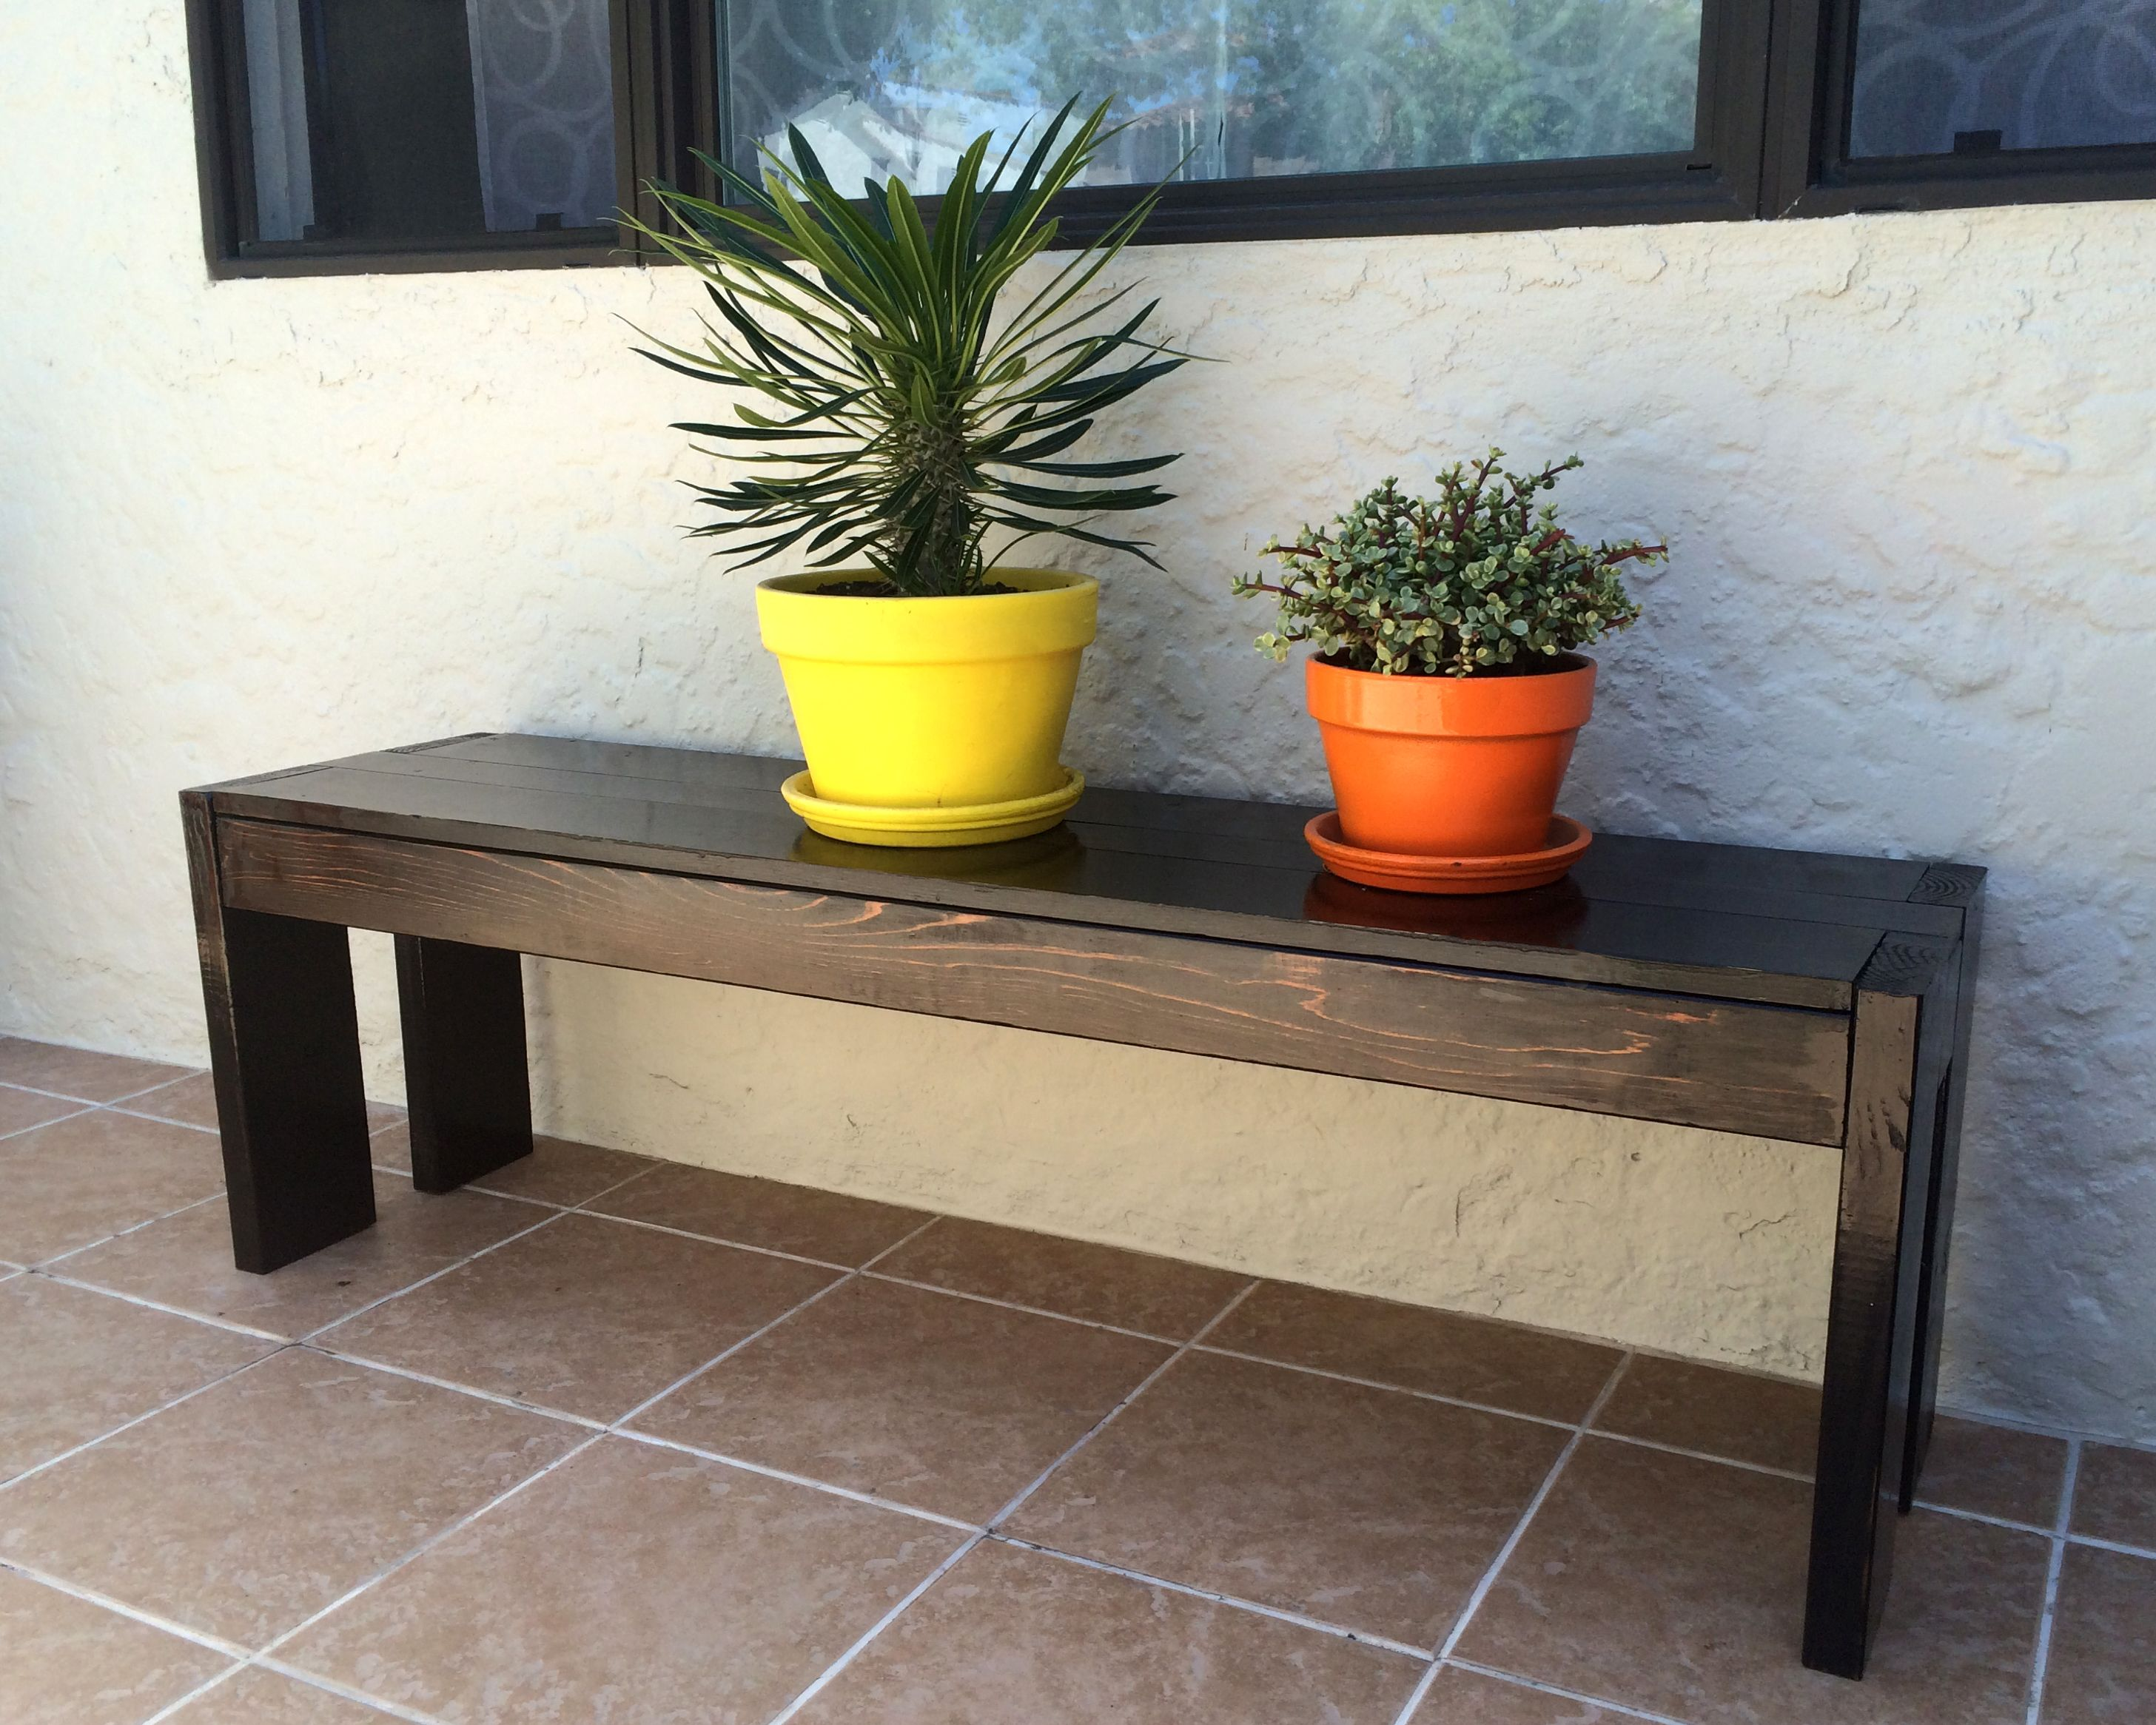 Front porch bench do it yourself home projects from ana white front porch bench do it yourself home projects from ana white solutioingenieria Choice Image